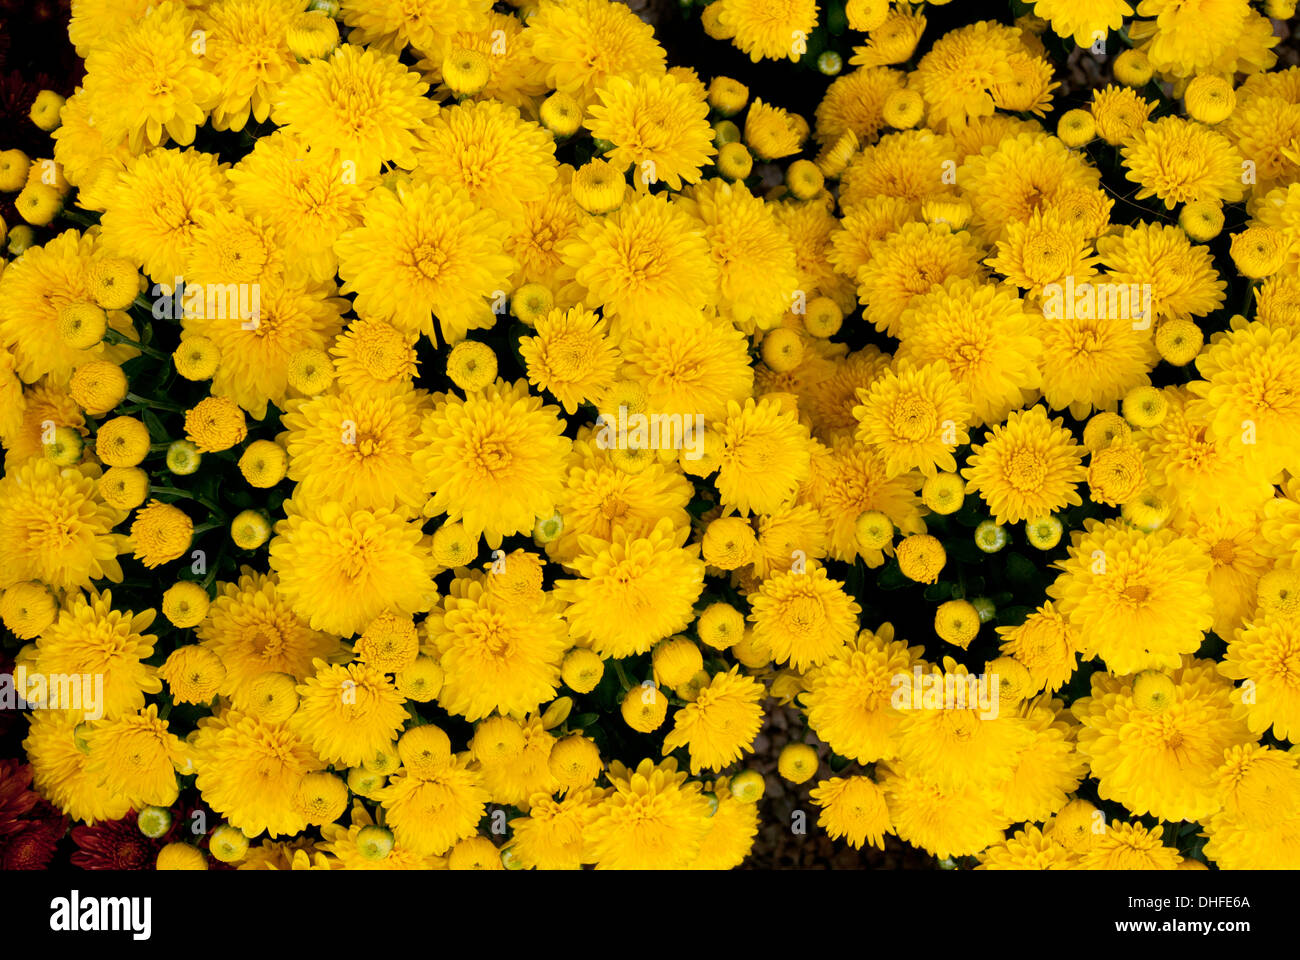 Yellow mums flowers close up stock photo 62420690 alamy yellow mums flowers close up mightylinksfo